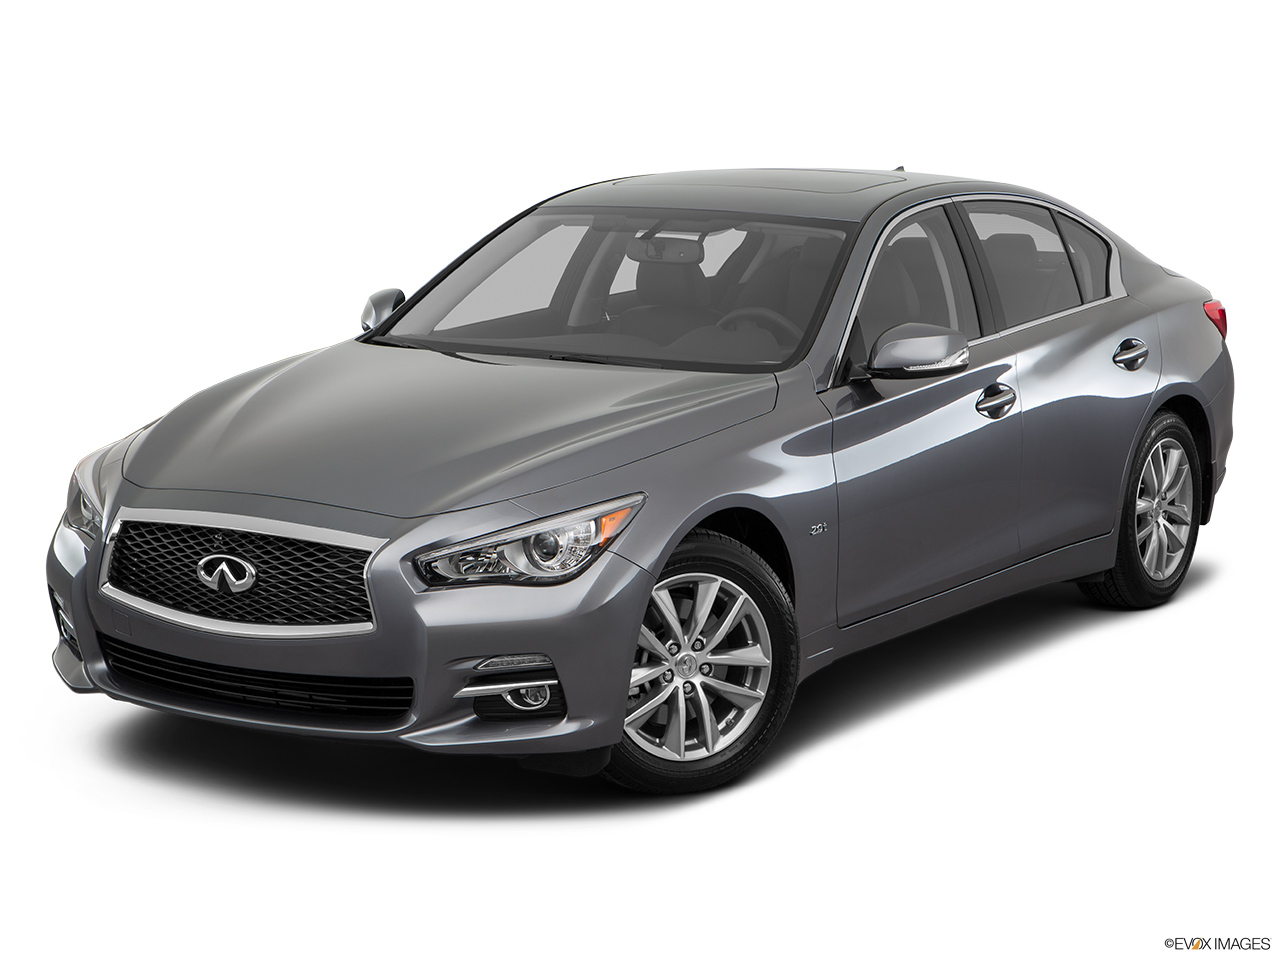 2016 infiniti q50 prices in kuwait gulf specs reviews for kuwait city yallamotor. Black Bedroom Furniture Sets. Home Design Ideas